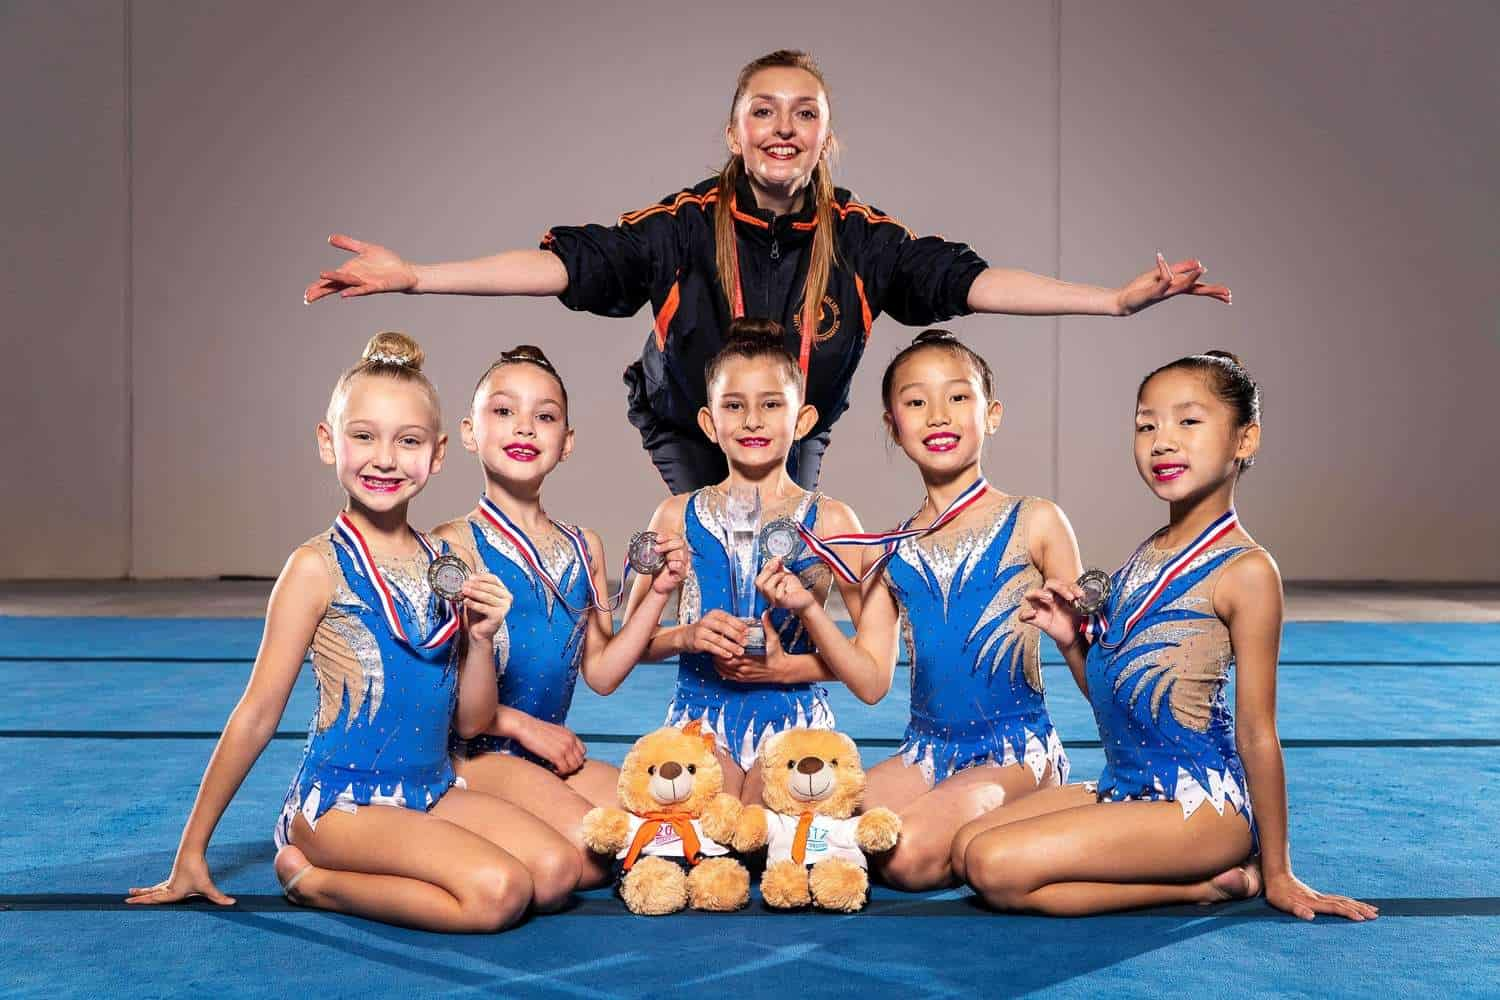 aesthetic group gymnastics five girls and trainer